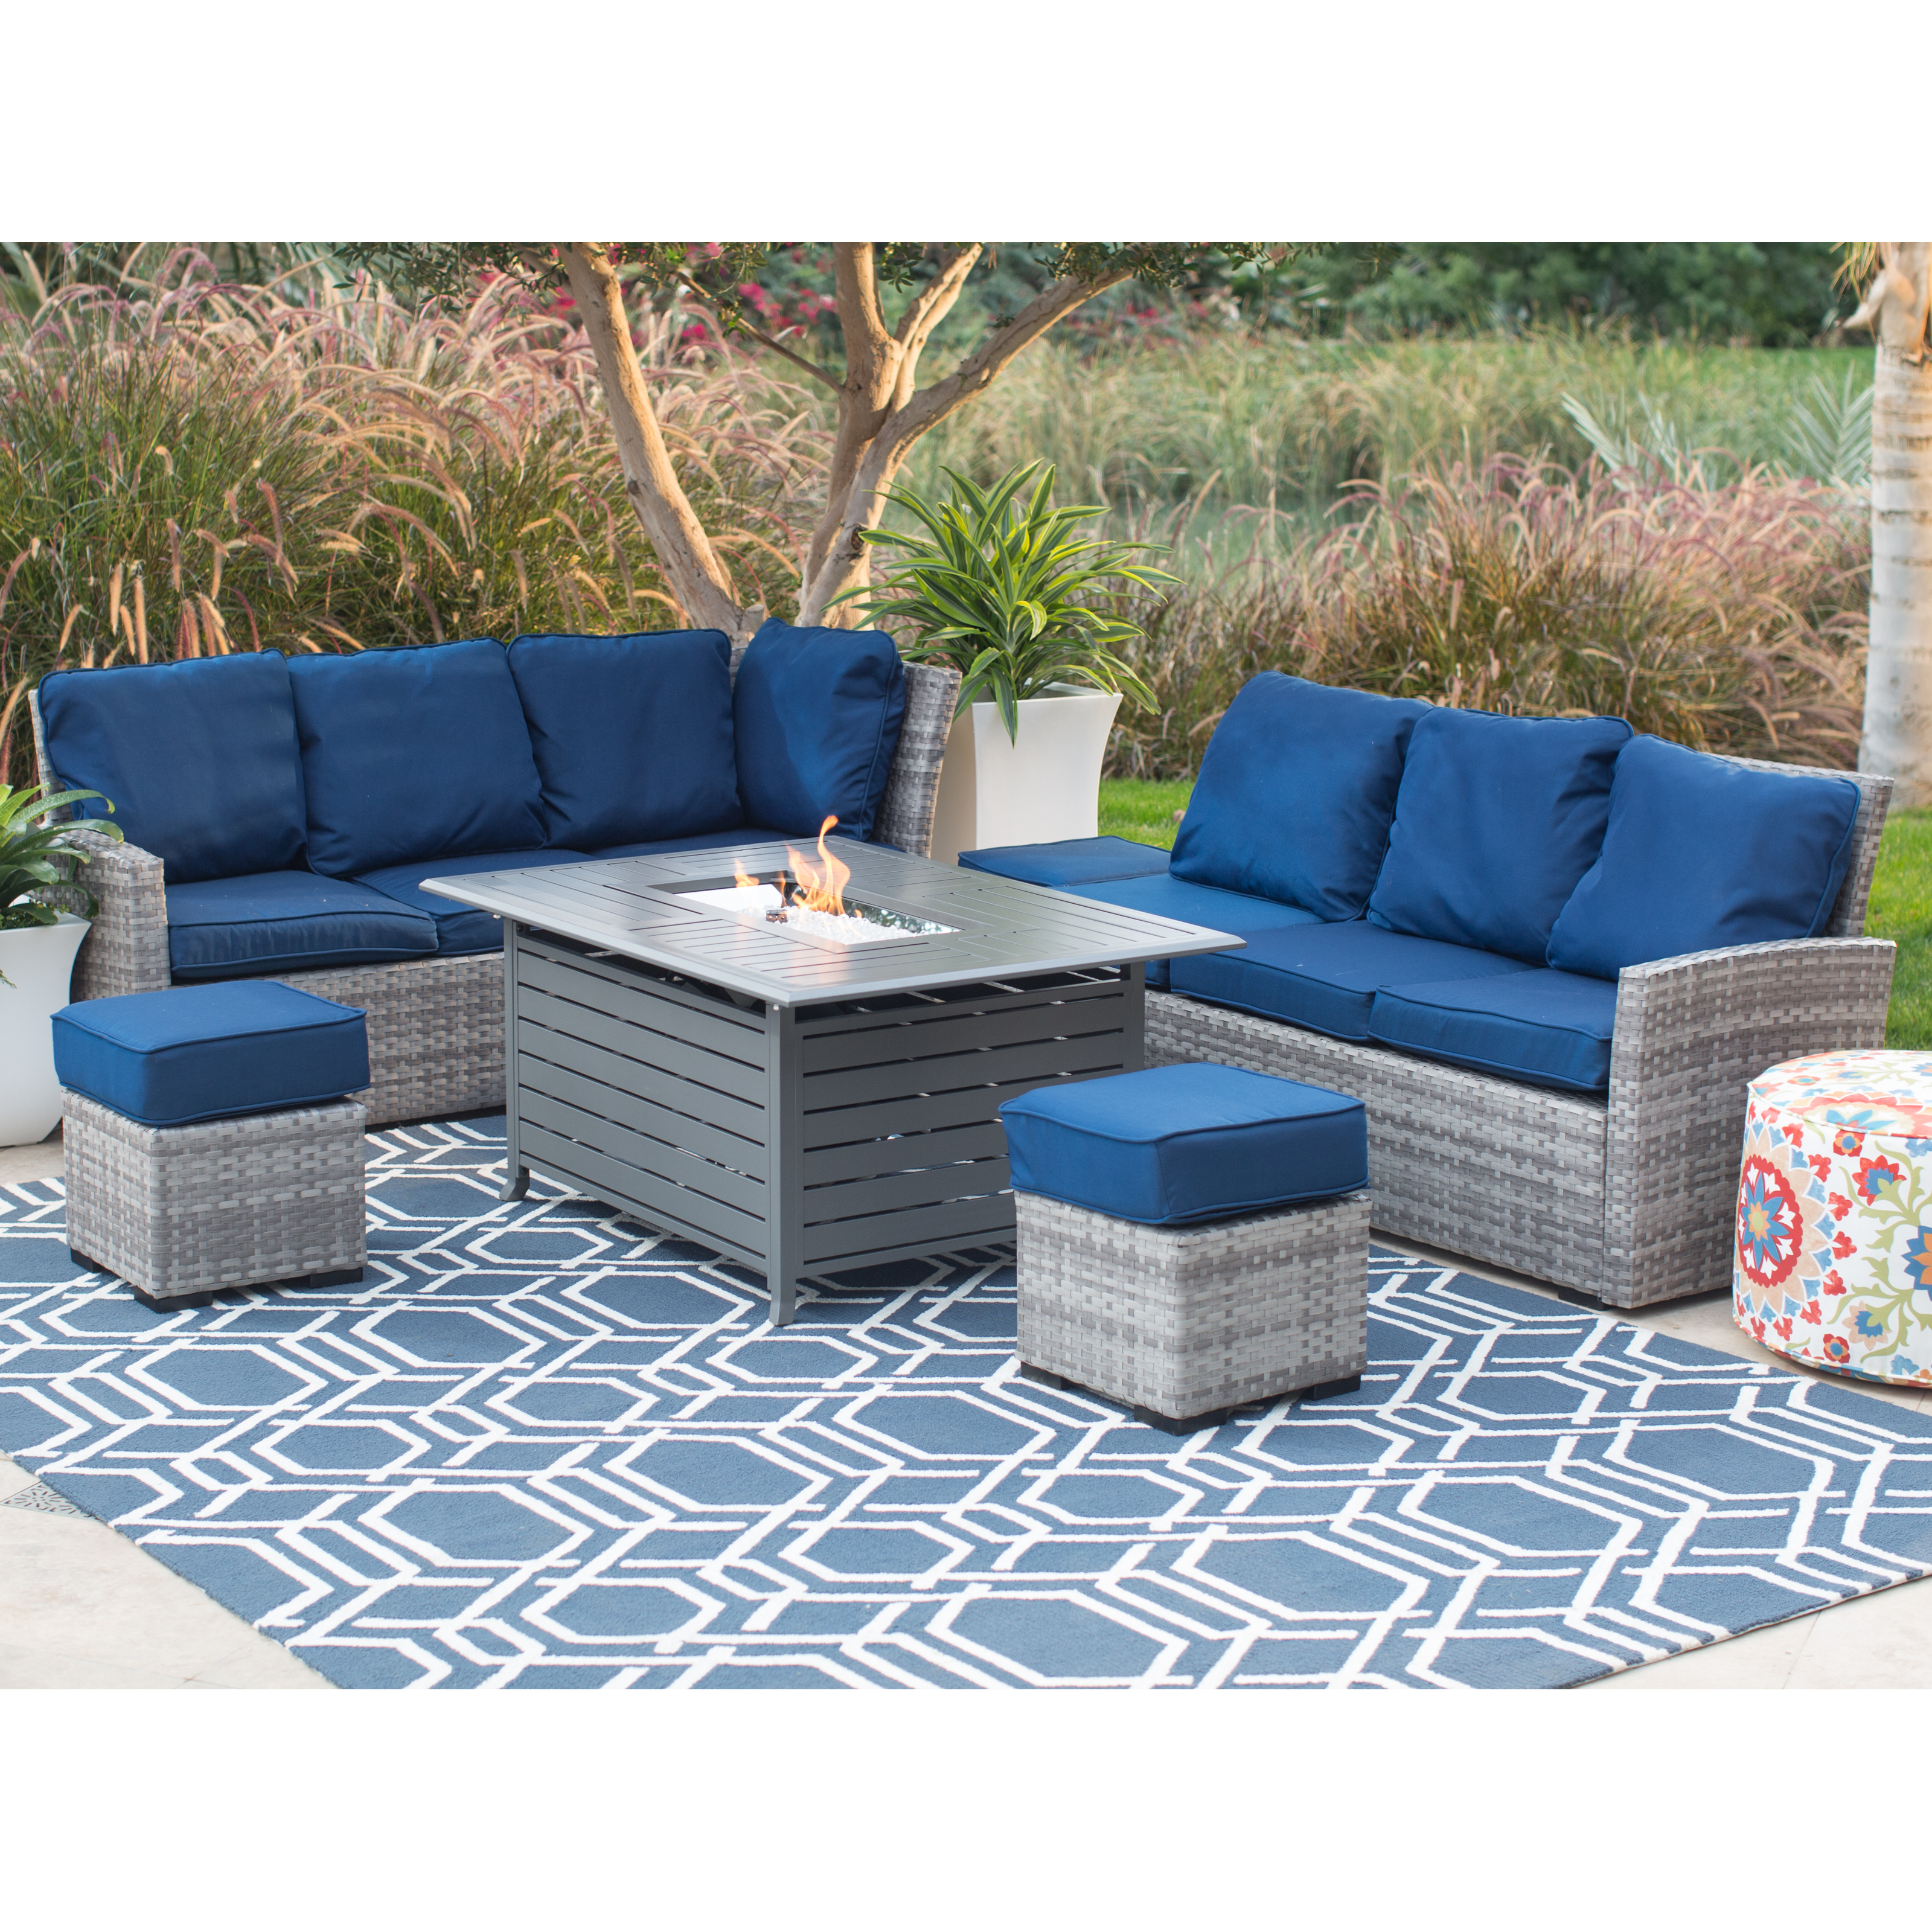 Belham Living Brookville All Weather Wicker Sofa With